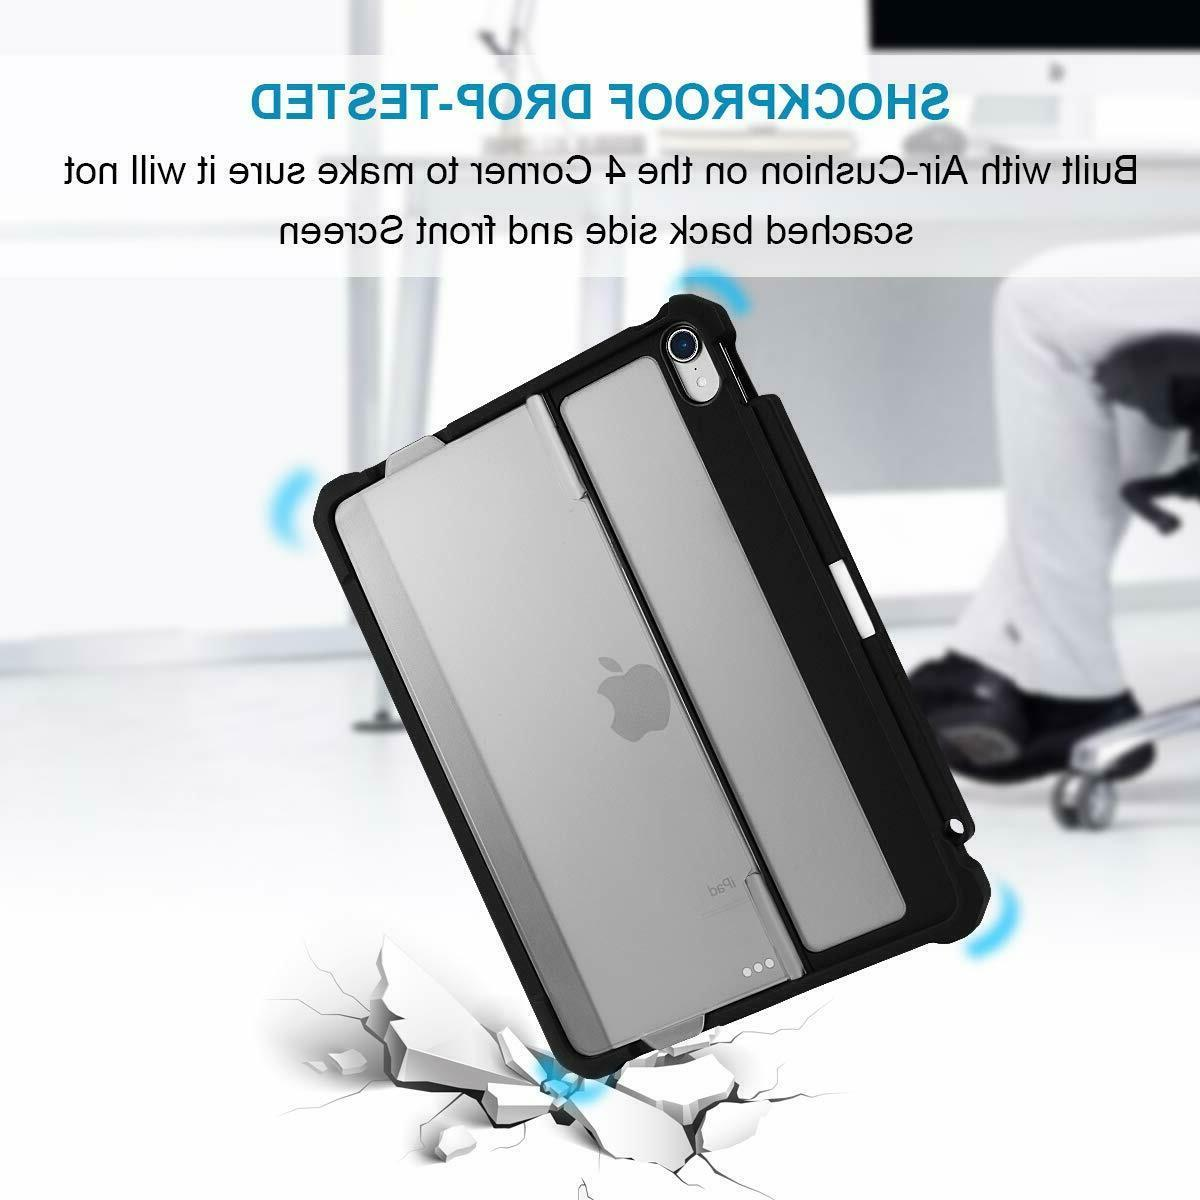 iPad Pro inch 2018 3rd Gen Case Protective Durable